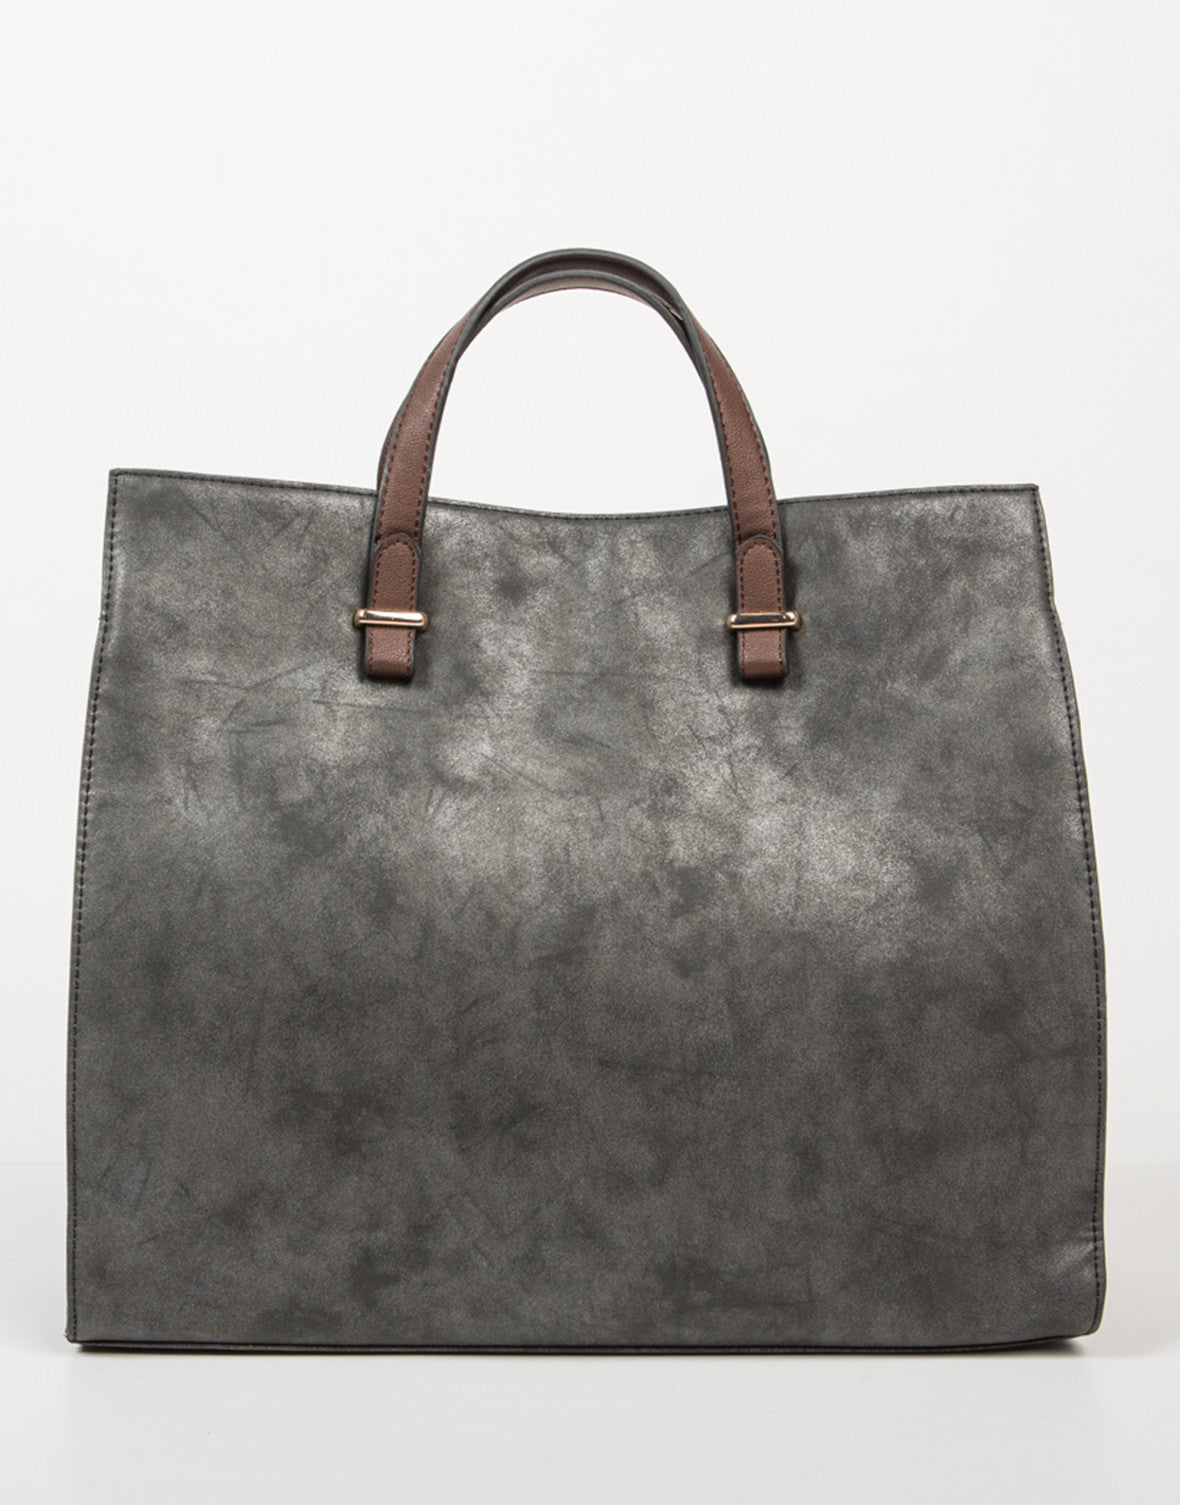 Front View of Oversized Shopper Tote Bag